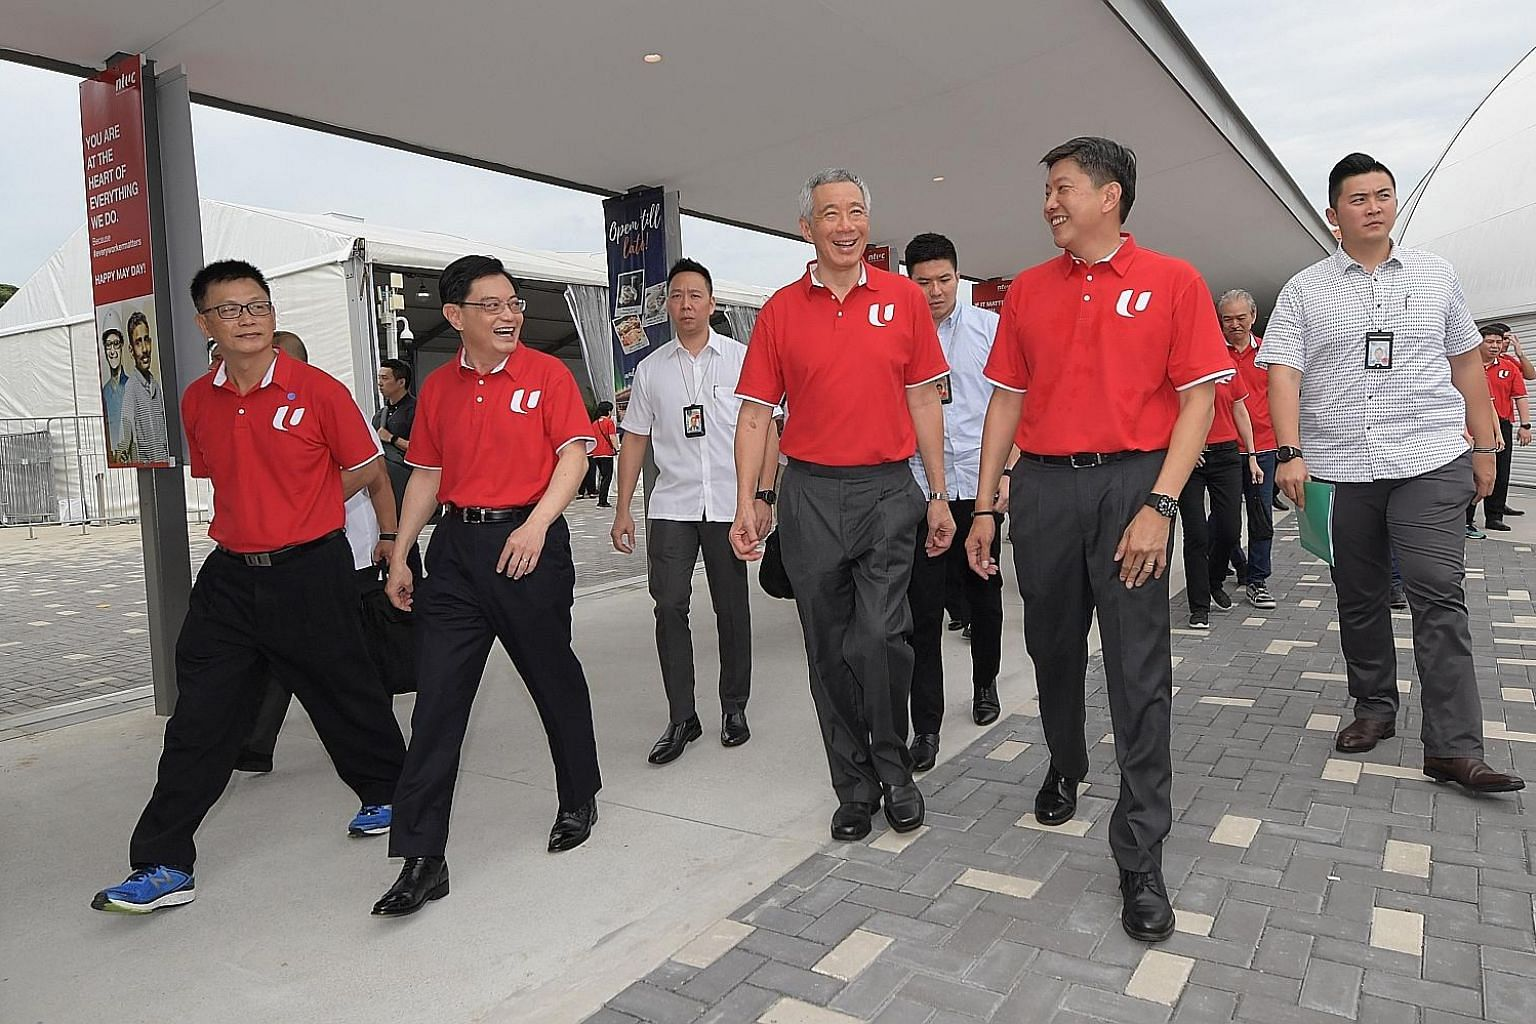 (Front, from left) NTUC vice-president Tan Hock Soon, Deputy Prime Minister Heng Swee Keat, Prime Minister Lee Hsien Loong and labour chief Ng Chee Meng at Downtown East, where Mr Heng addressed 1,600 unionists, workers, employers and Cabinet ministe